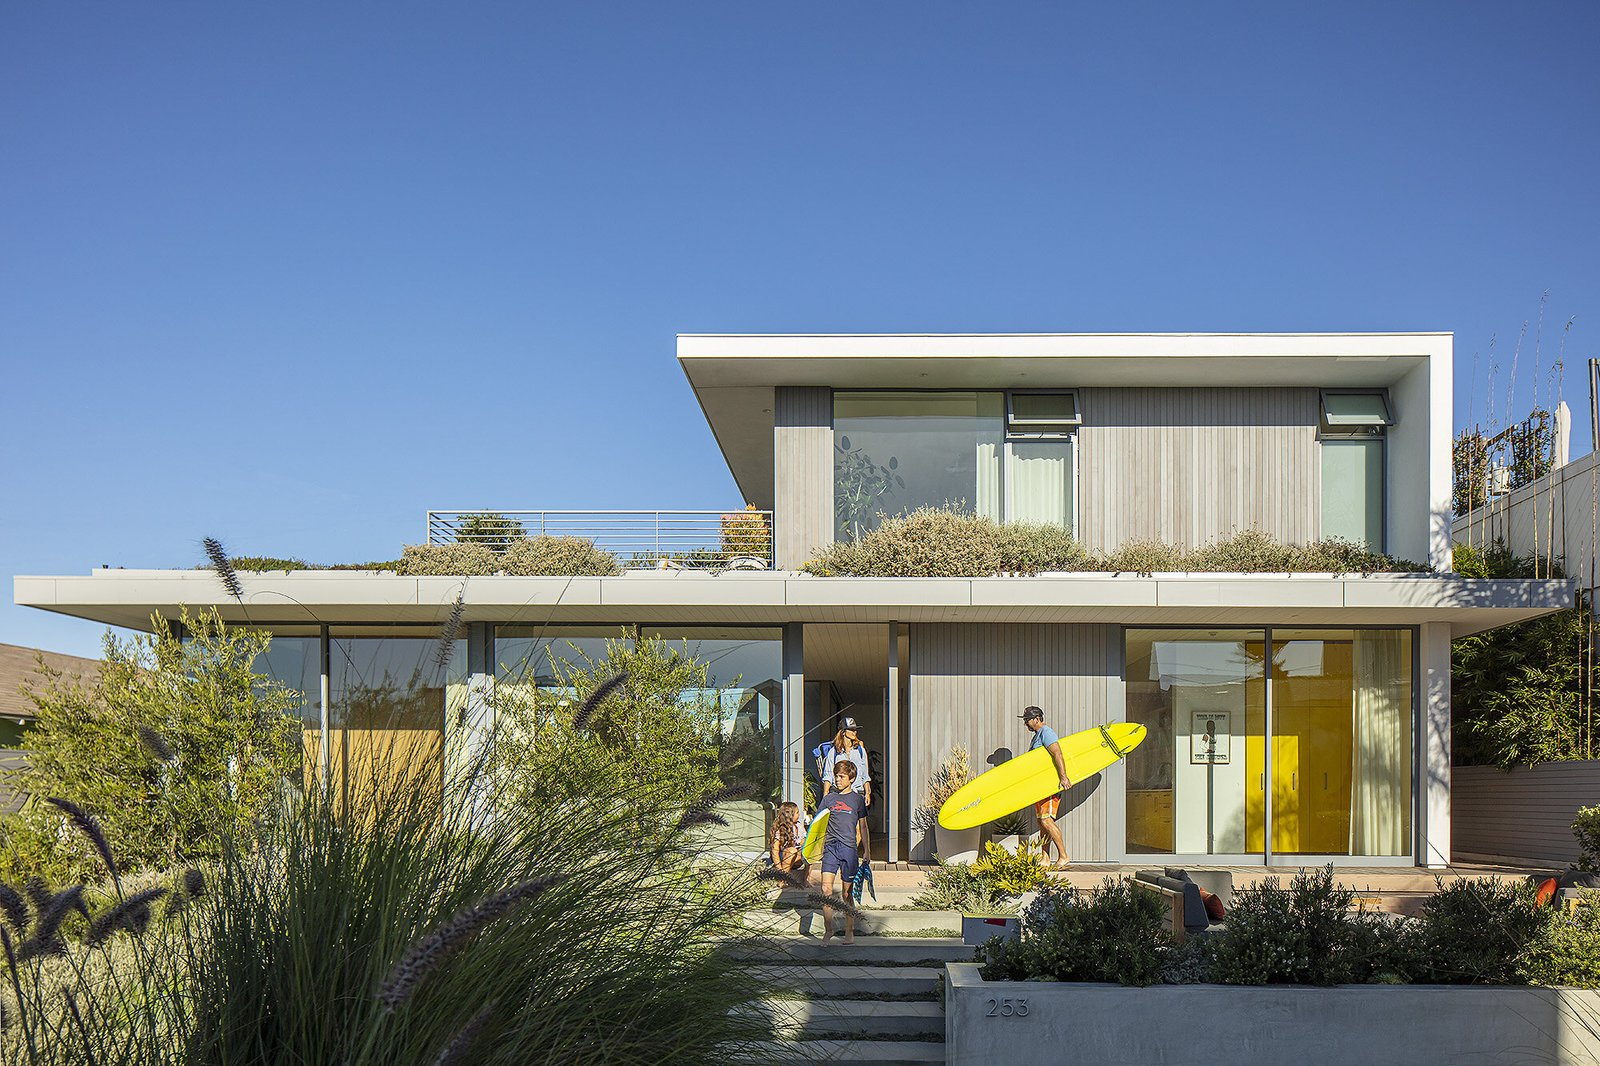 31st Street Residence by LM Design exterior